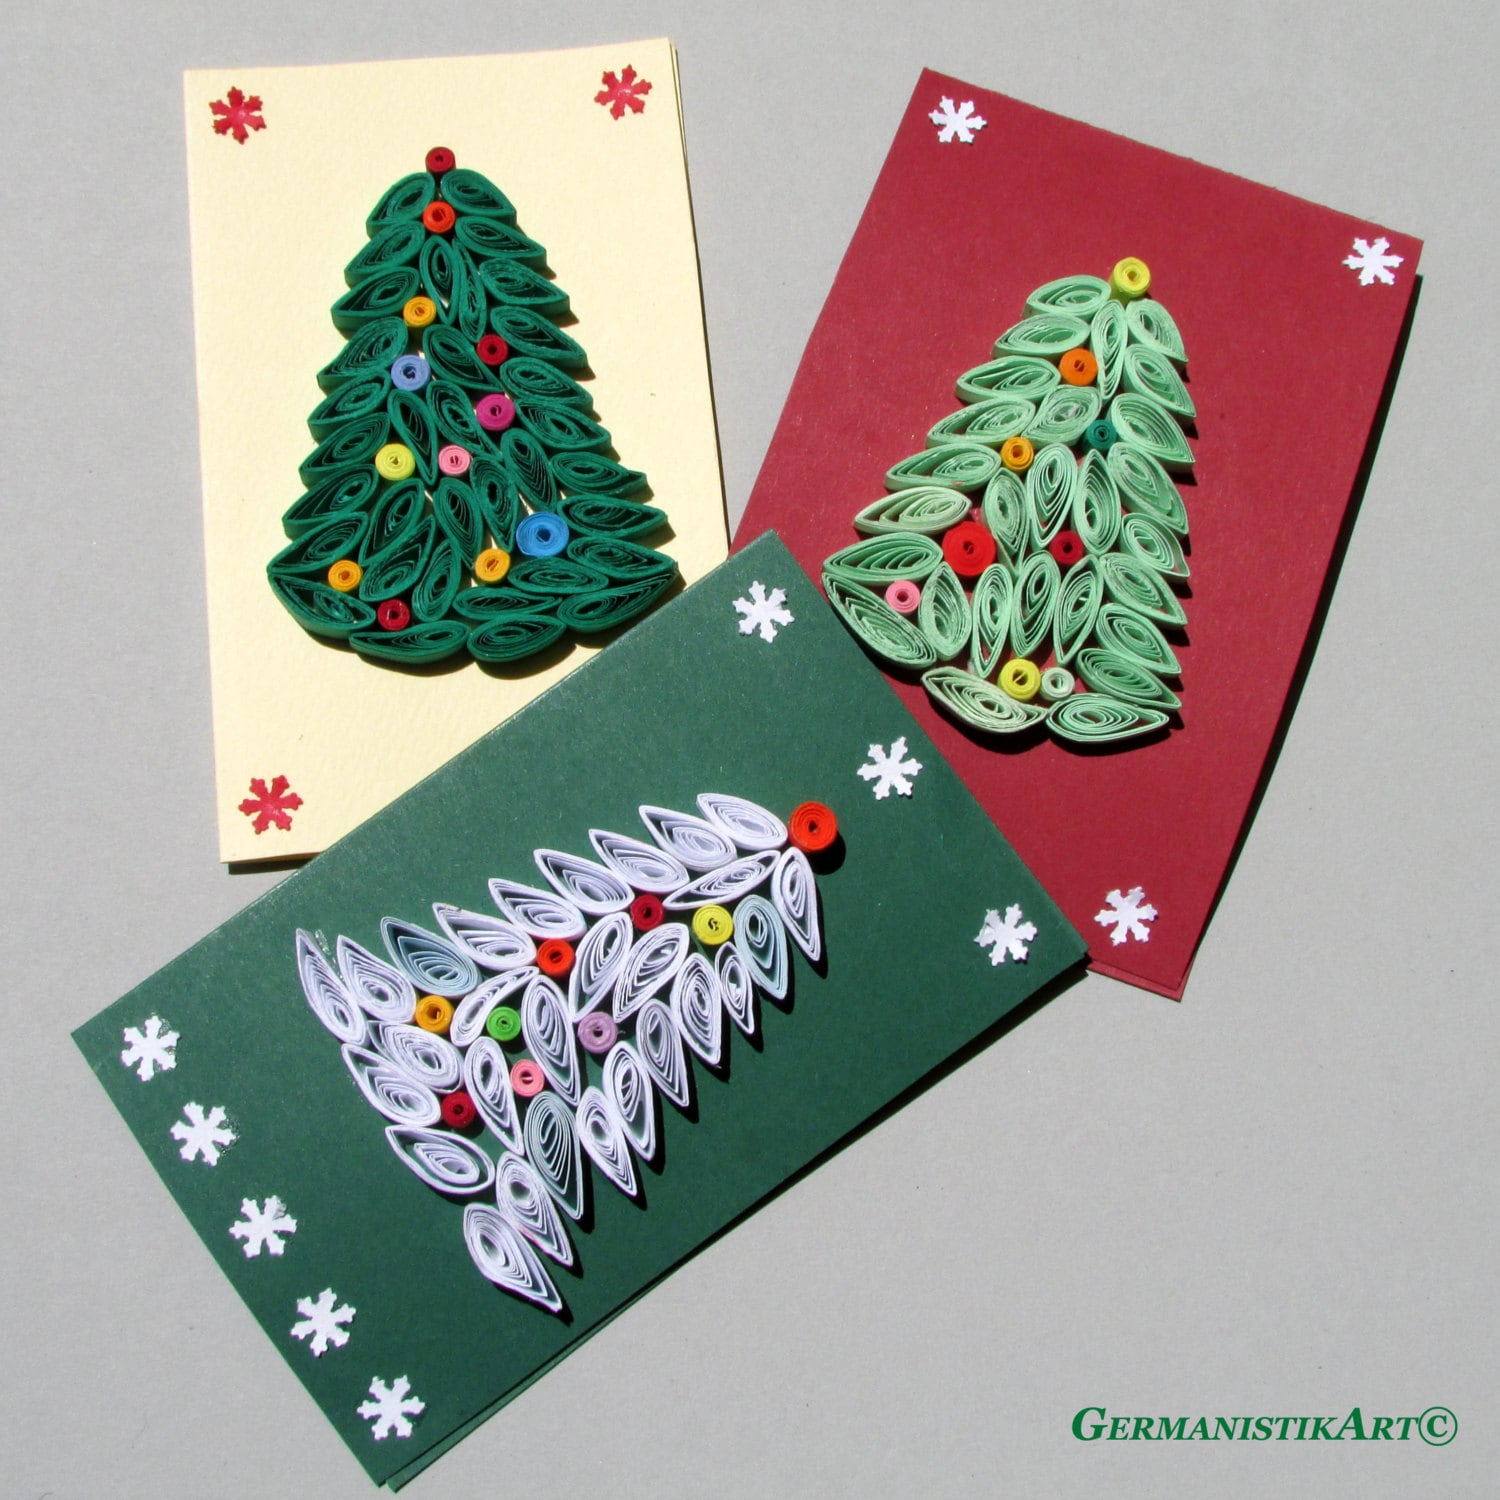 Christmas Quilling Set of 3 Quilled Paper Handmade Cards, with Christmas Tree Motifs - GermanistikArt